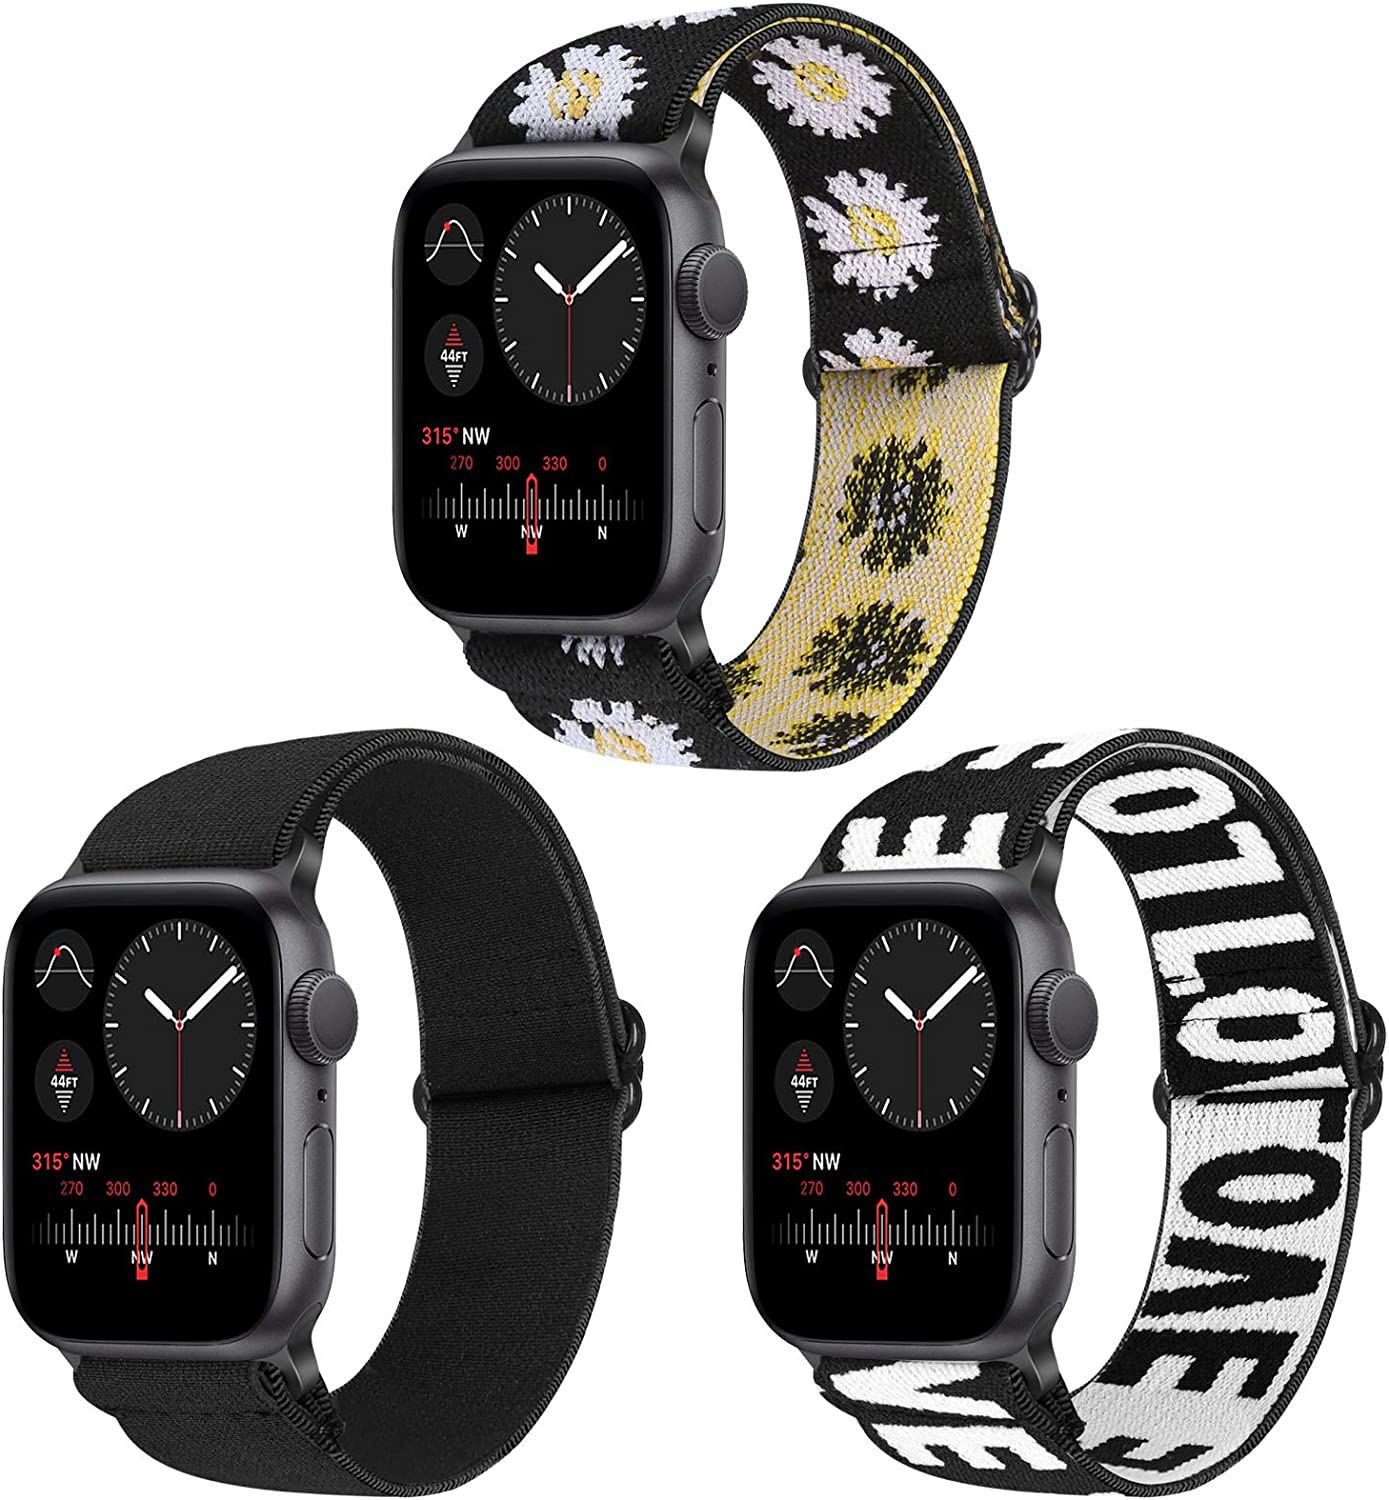 Vodtian Nylon Loop Elastic Watch Band Compatible with Apple Watch 38mm 40mm, Women Men Adjustable Replacement Sport Straps for iWatch Series 6/5/4/3/2/1/SE (Black+LOVE+Sunflower, 38mm/40mm)